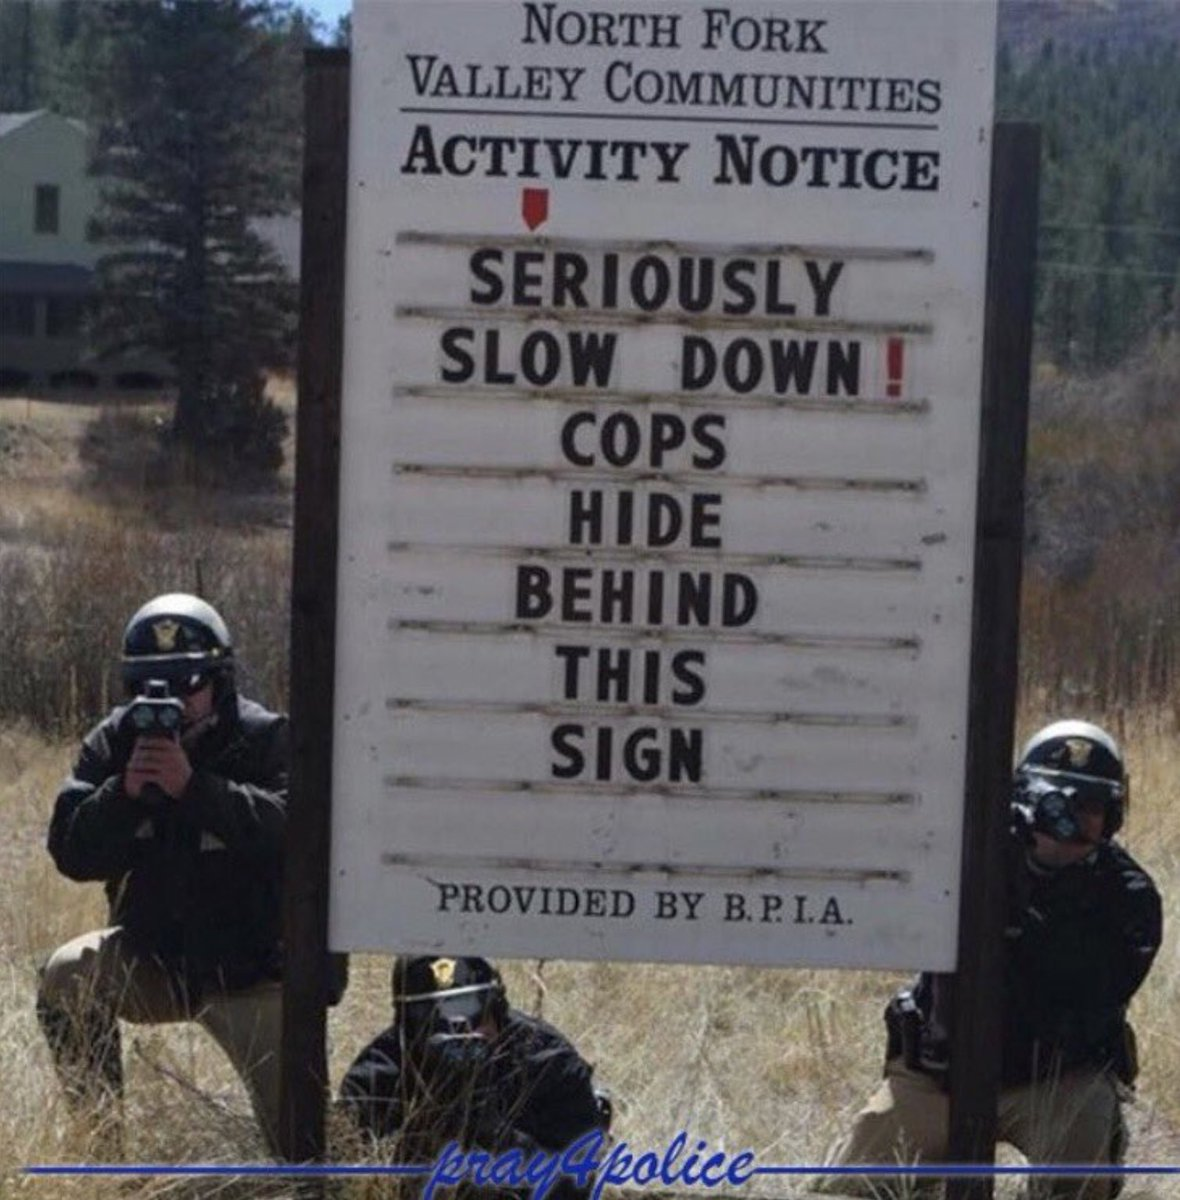 #GoodMorning! Seriously! #ArriveAlive this #ThanksgivingEve. No #DUI, speeding, road rage, etc. #BeThankful and gracious. #MoveOver #BeSafe, Blue!  ~M <br>http://pic.twitter.com/d9eHpgl2ps